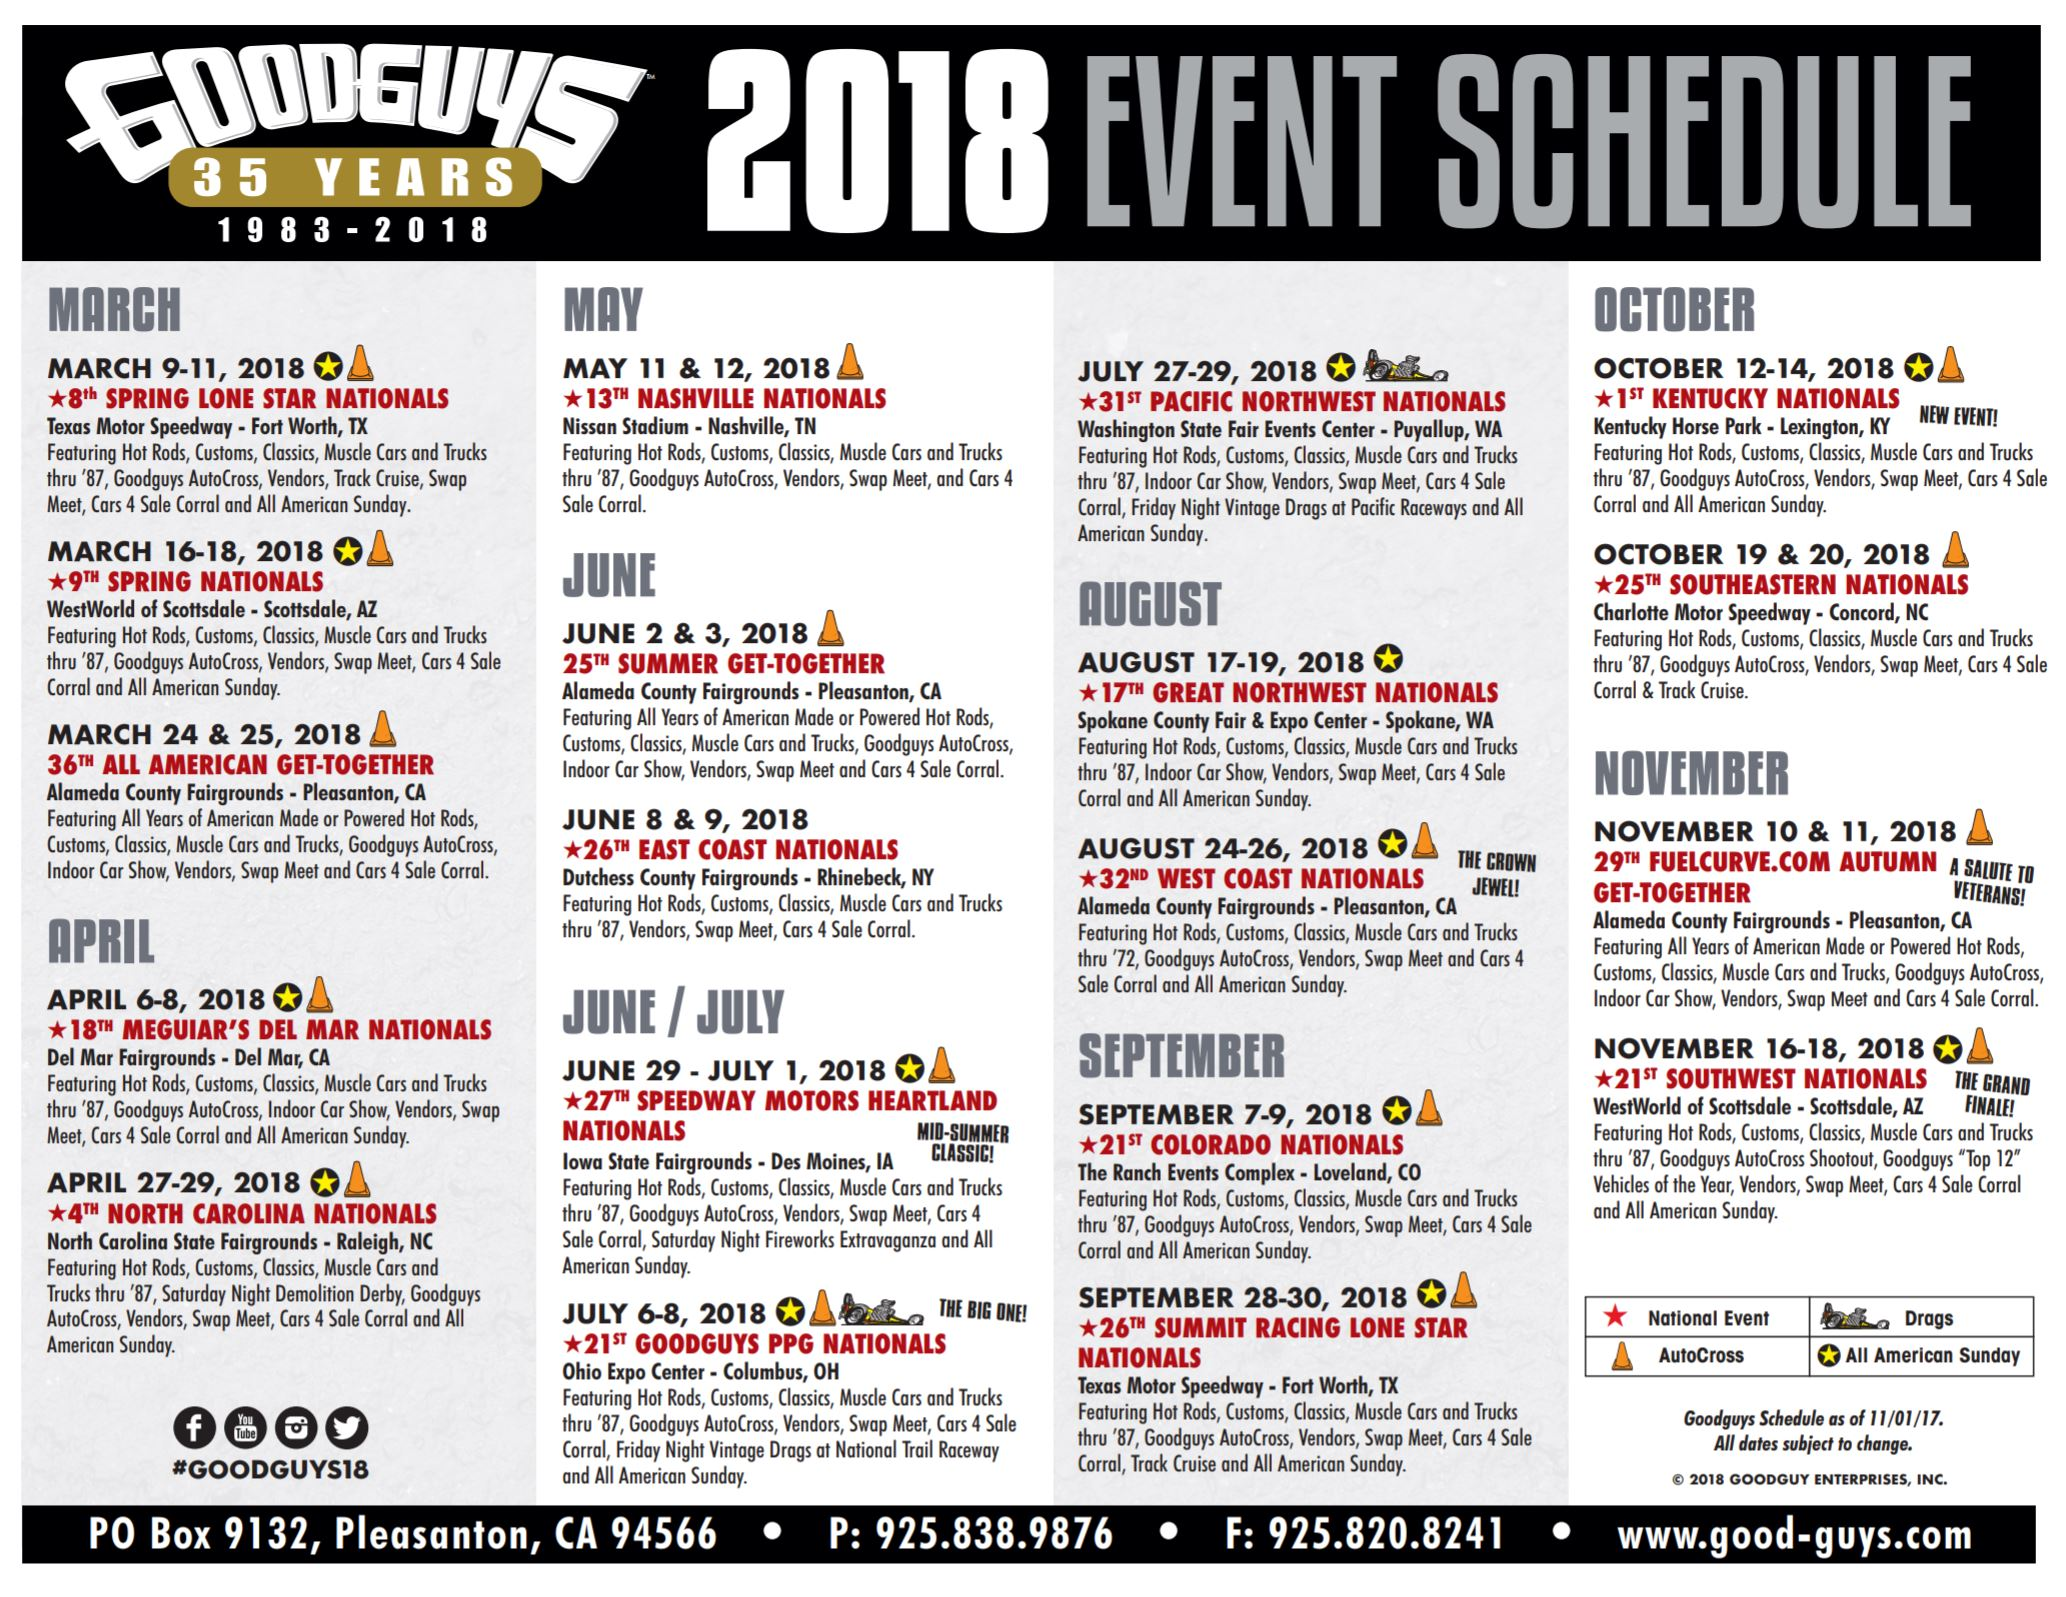 BangShiftcom Goodguys Announces Schedule And New Goodguys - Good guys car show rules